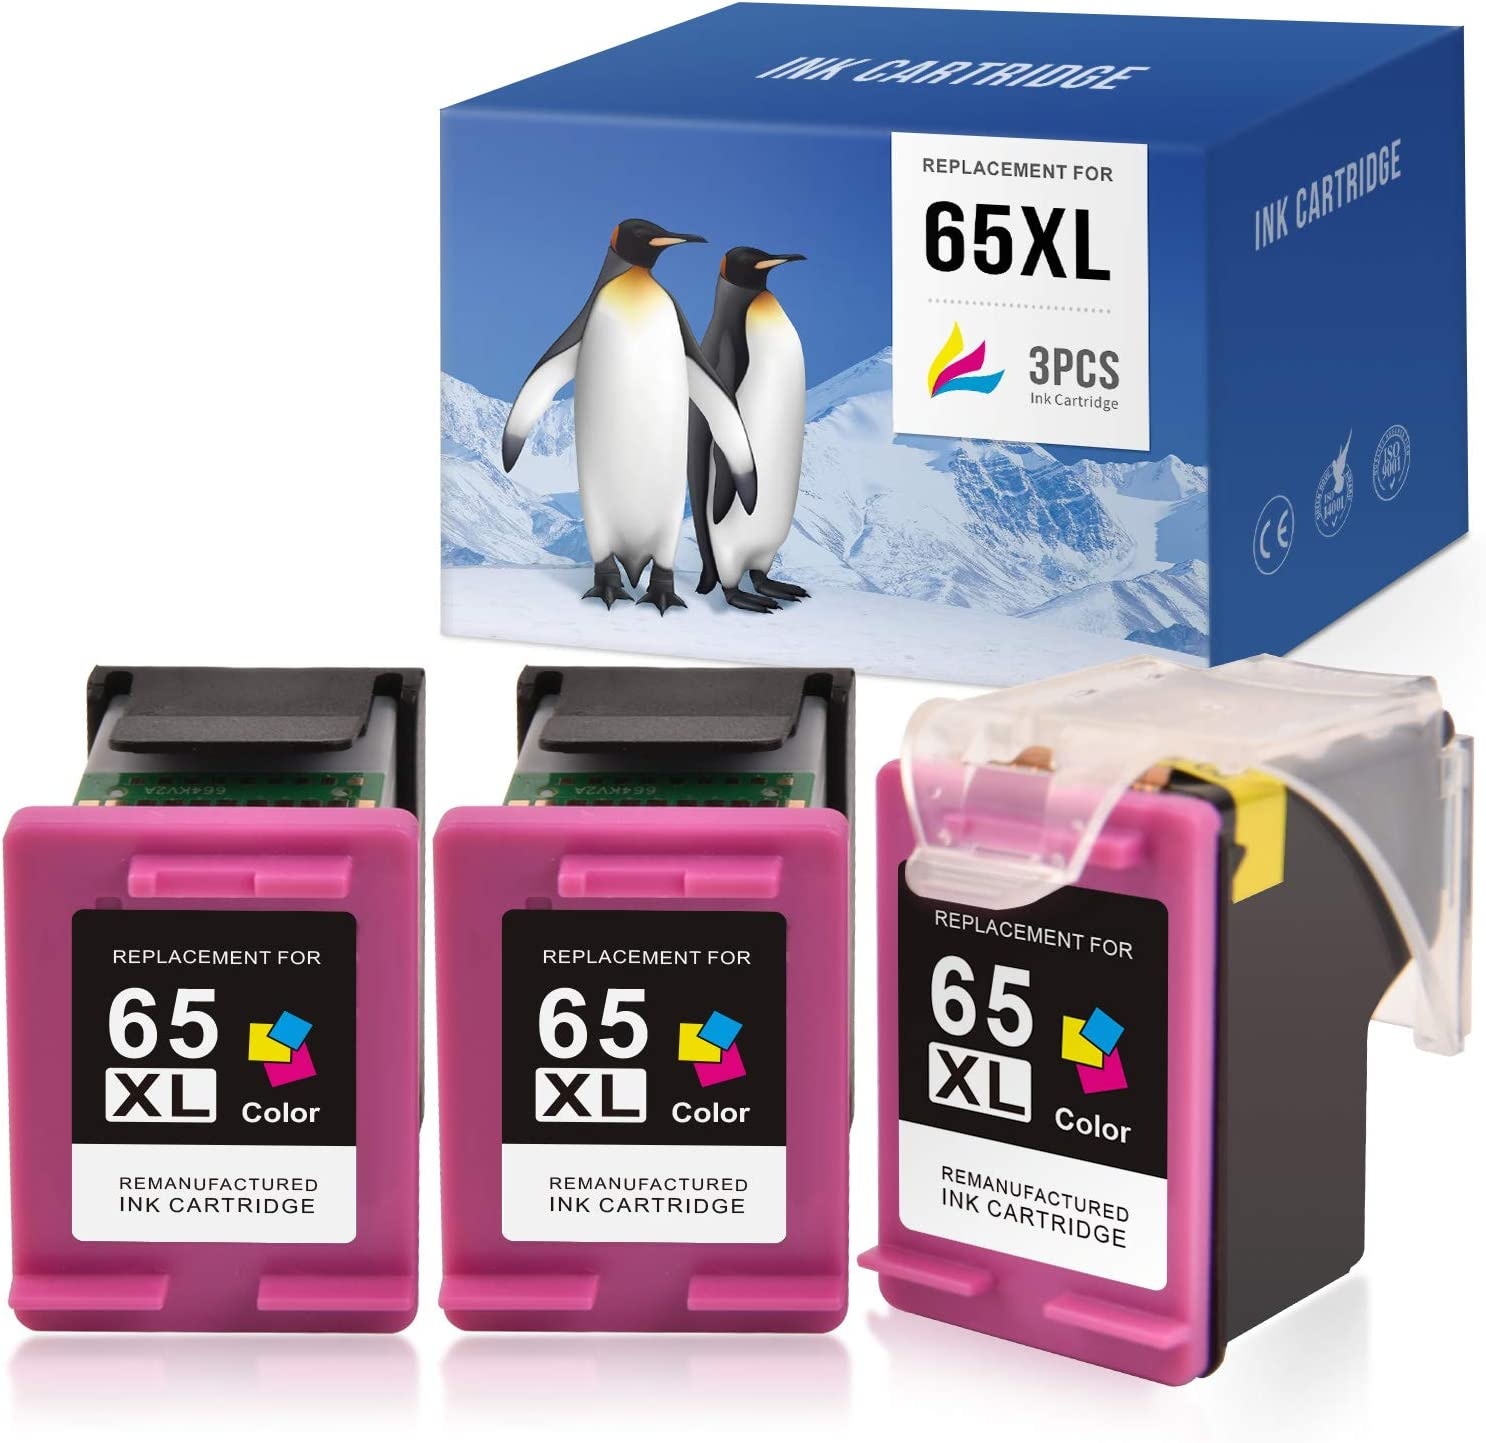 SAILNER Remanufactured Ink Cartridge Replacement for HP 65XL 65 XL Eco Saver use with DeskJet 3755 2622 3752 2655 2652 2636 2642 Envy 5055 5052 5012 N9K03AN (Tri-Color, 1 + 2 Pack)